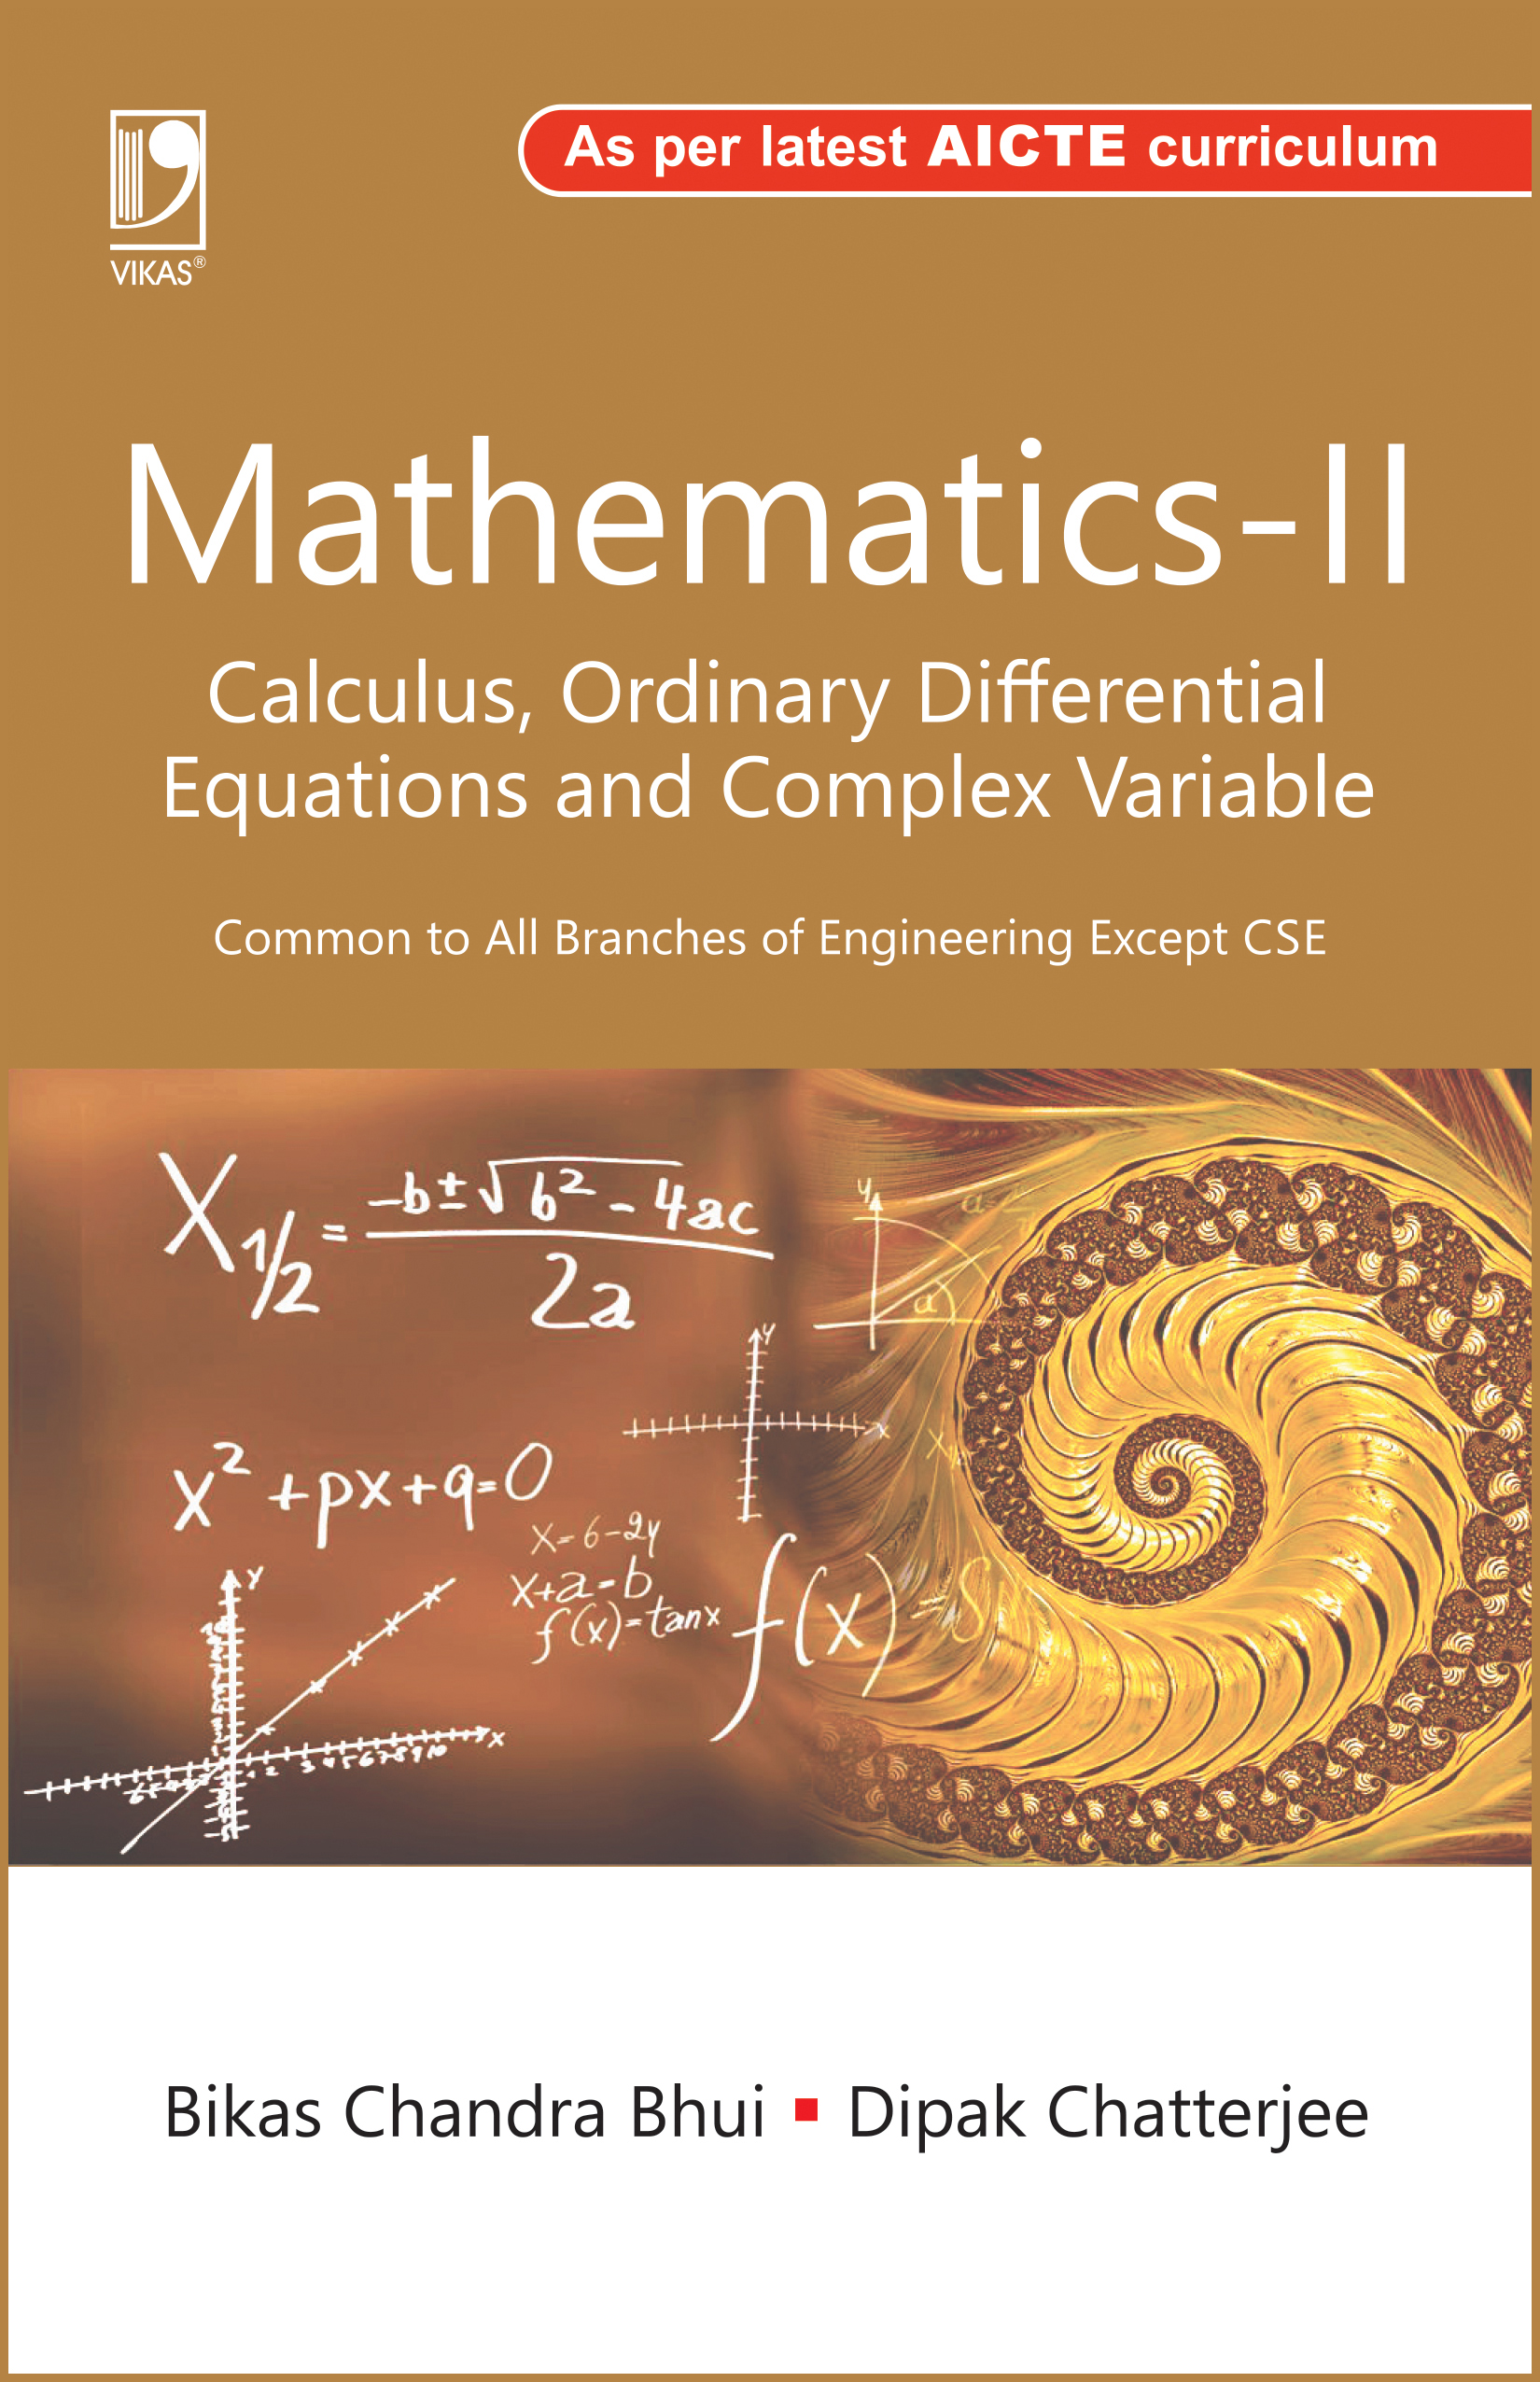 Mathematics-II (Calculus, Ordinary Differential Equations and Complex Variable) (As per AICTE) by  Bikas Chandra Bhui